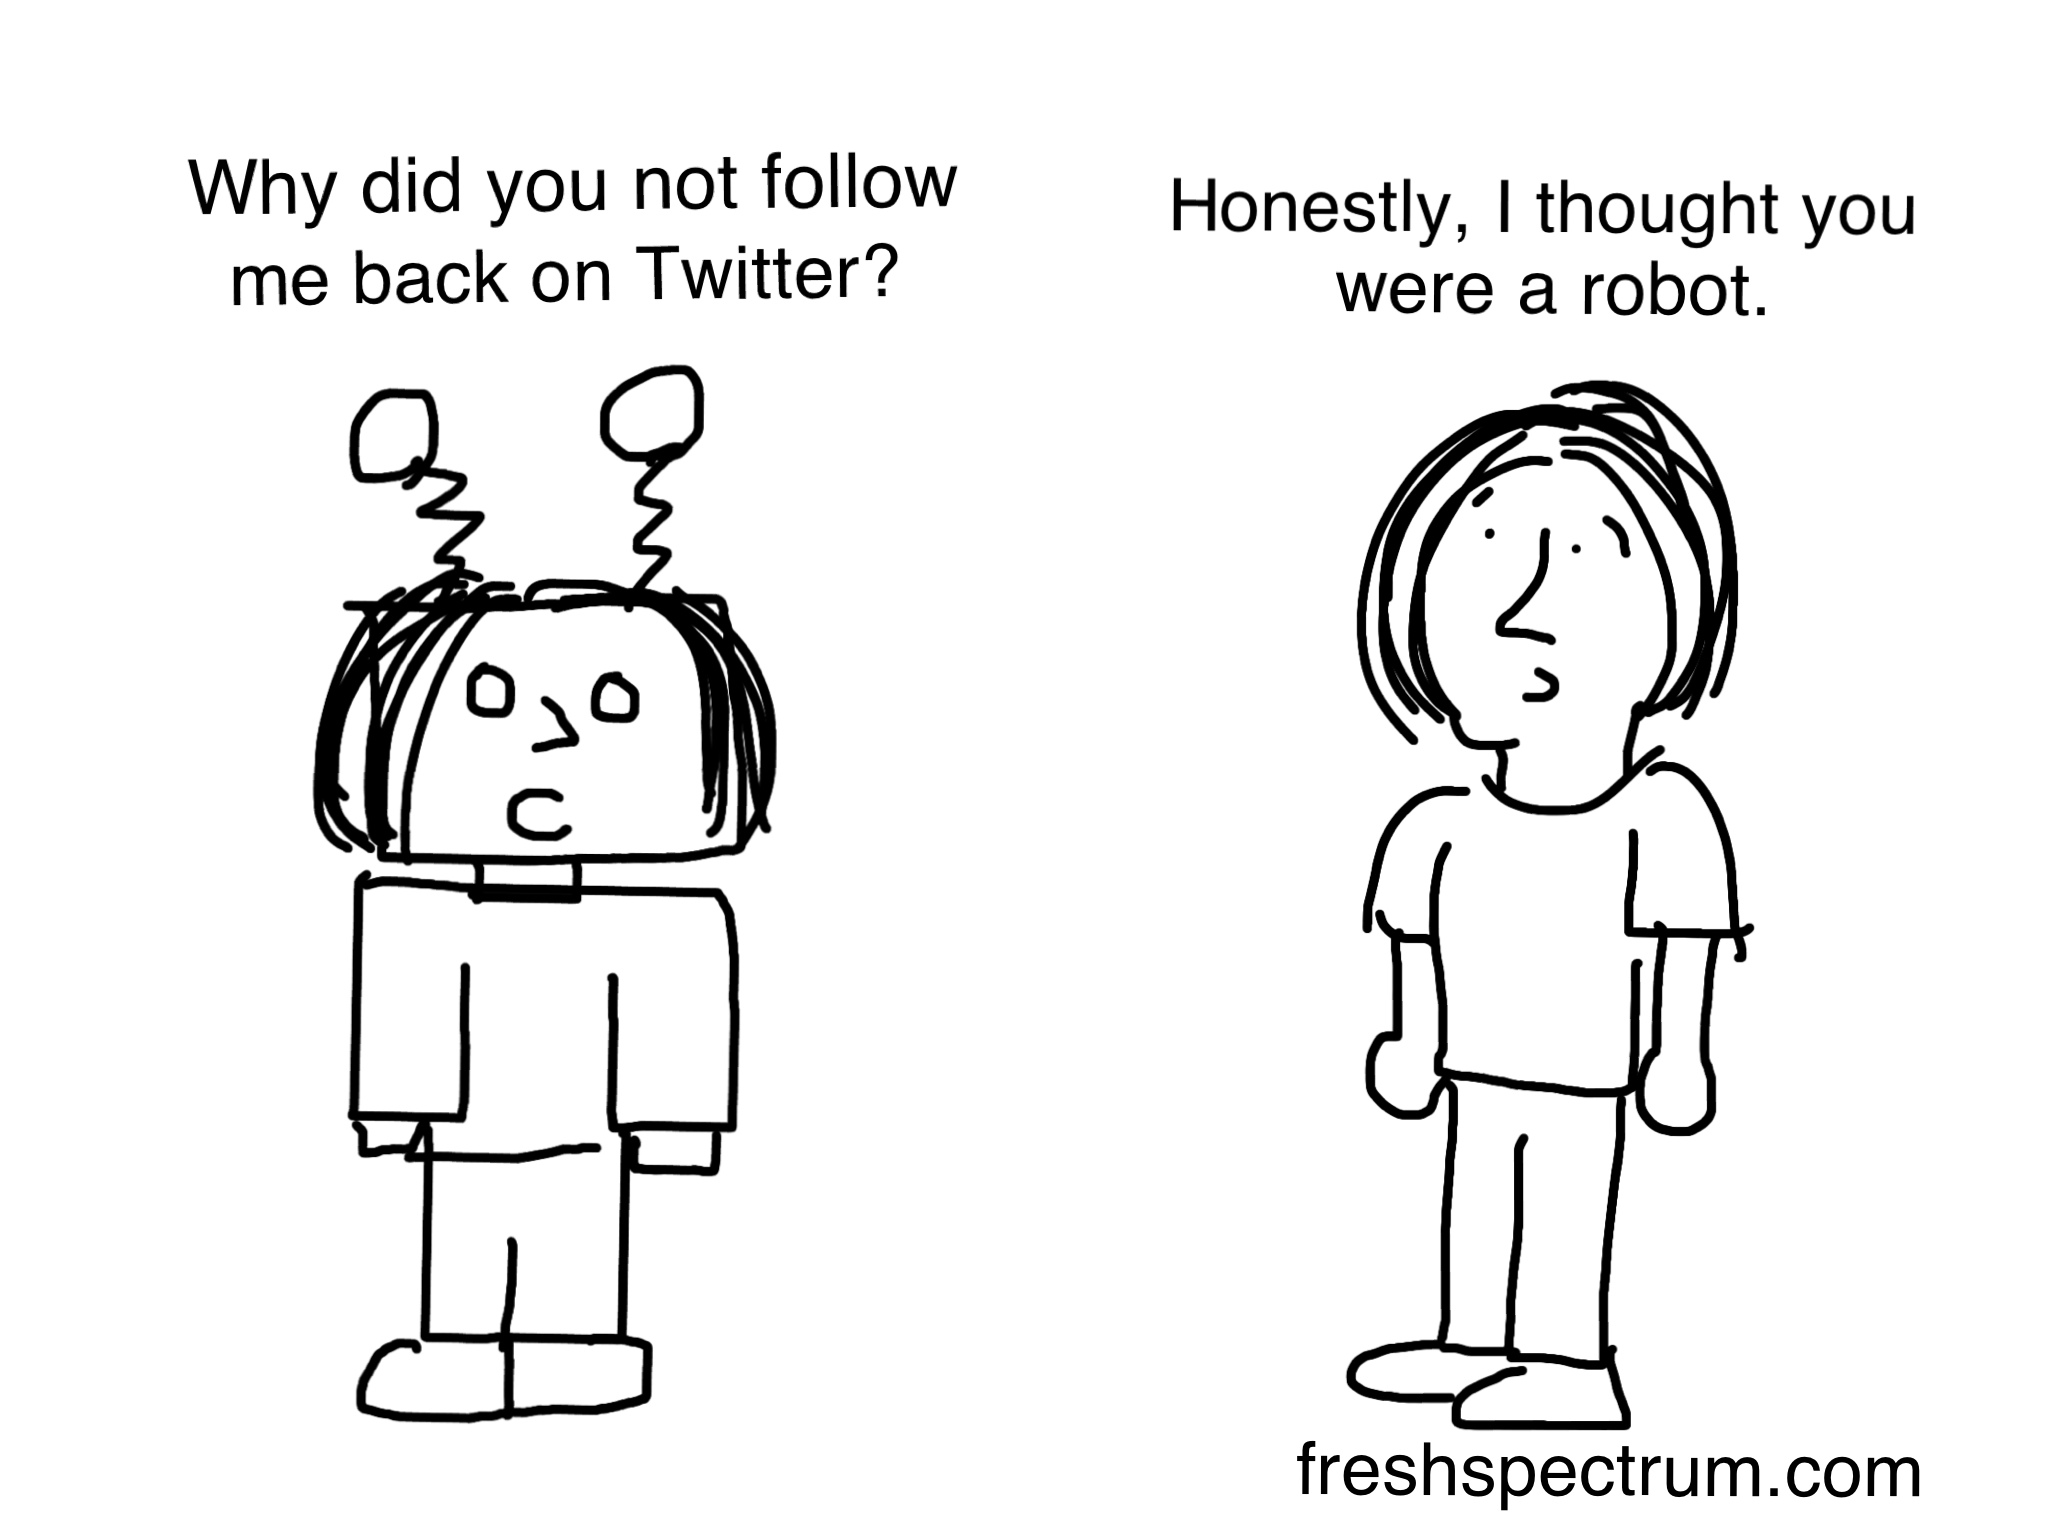 Cartoon: Person One: Why did you not follow me back on Twitter? Person Two: Honestly, I thought you were a robot.  Person One looks just like a robot.